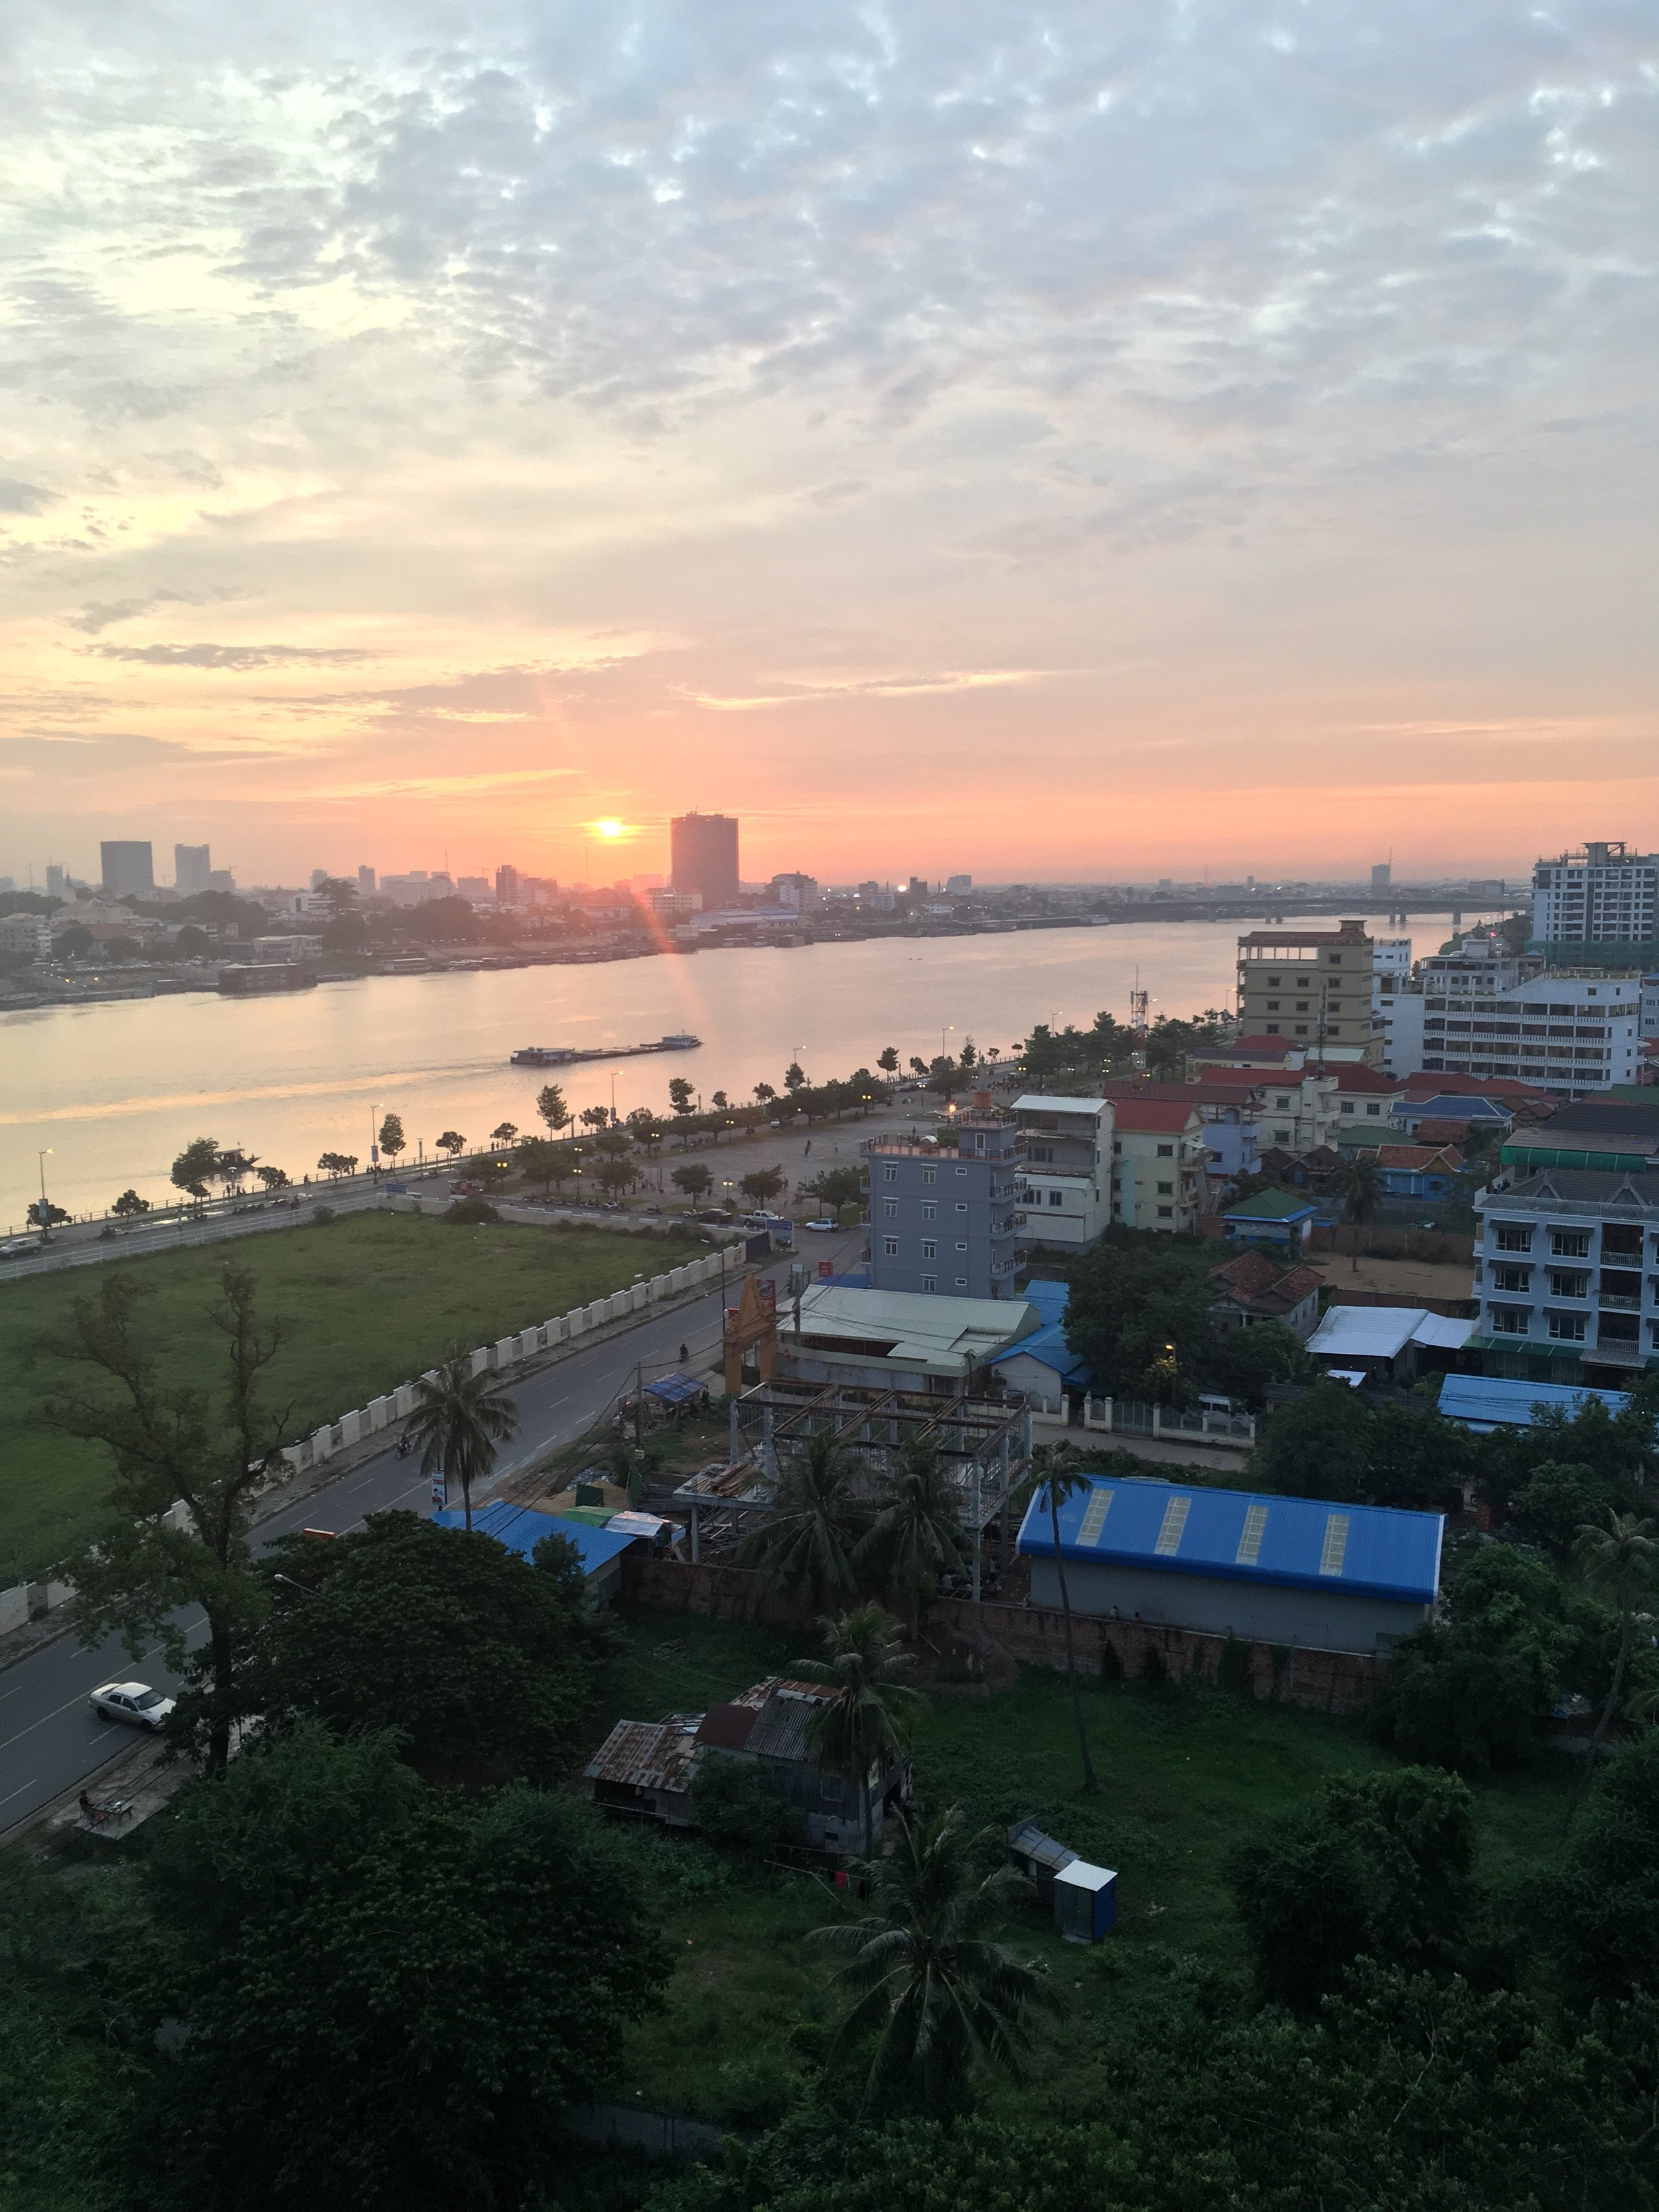 Sunset view over the Tonle Sap river, from the Outpost rooftop